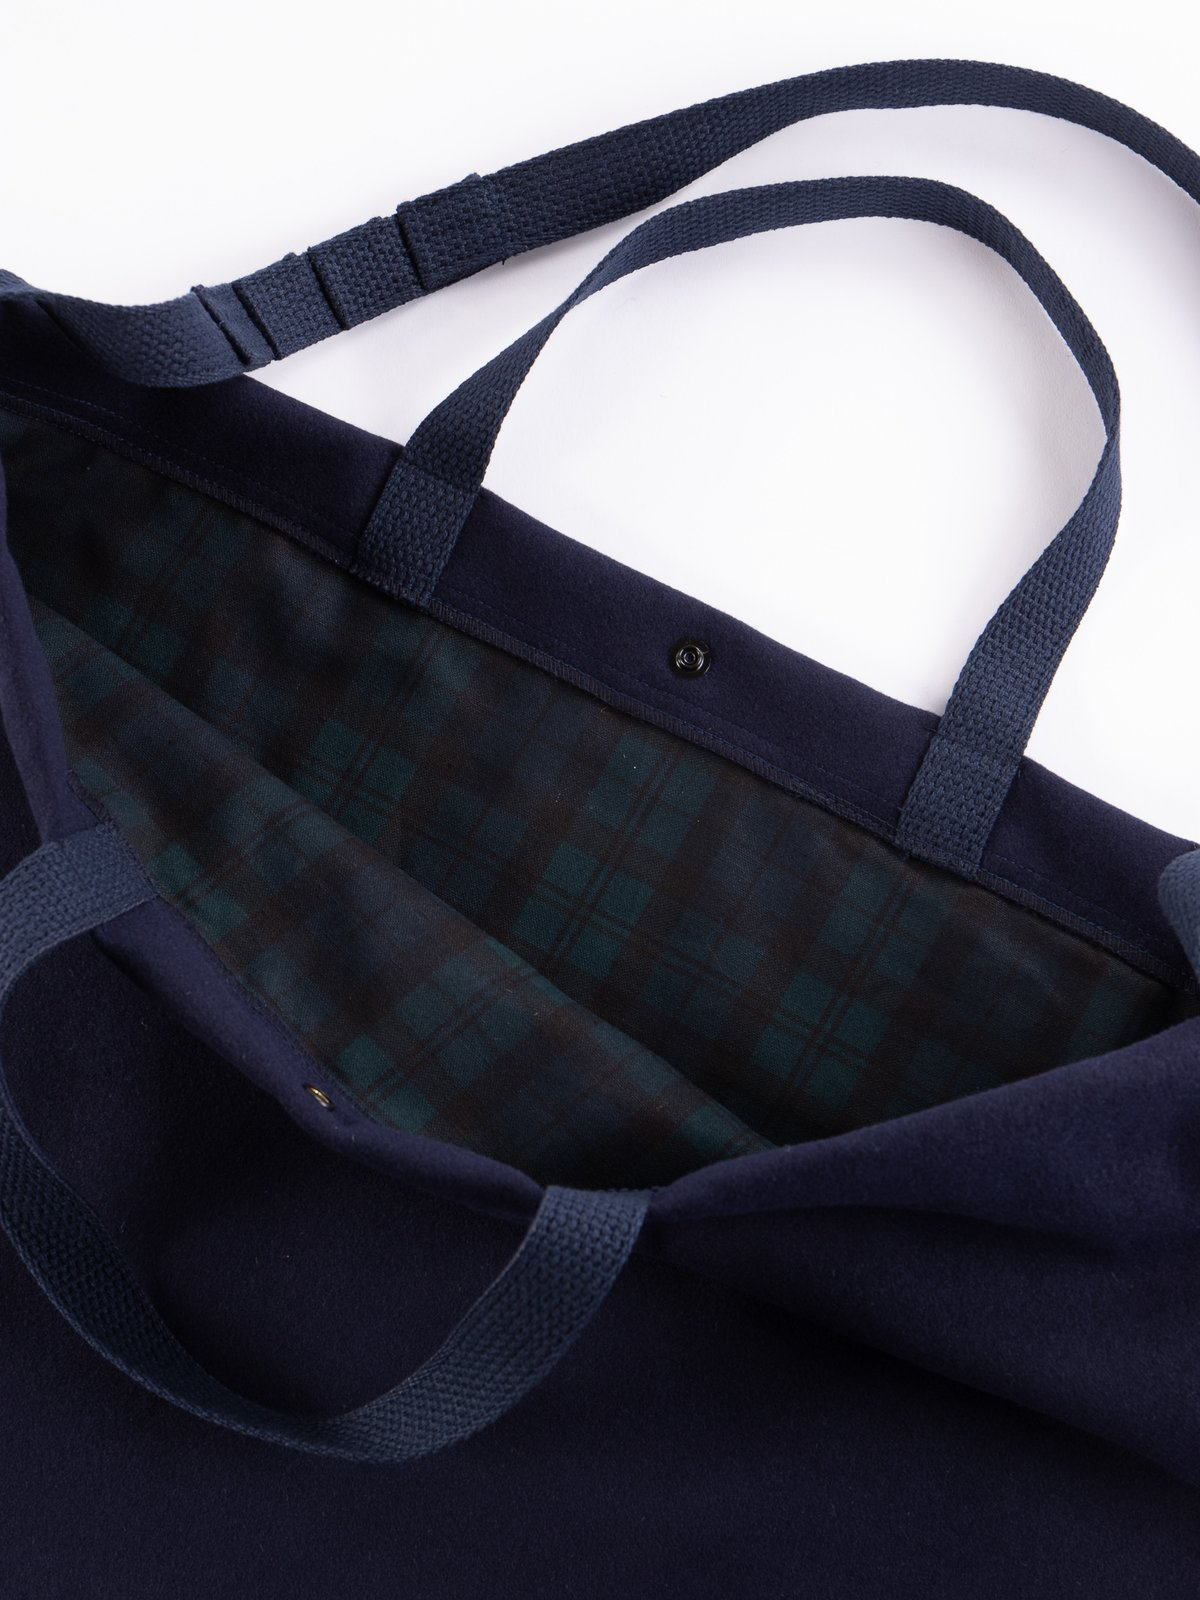 Navy Polyester Fake Melton Carry All Tote - Image 3